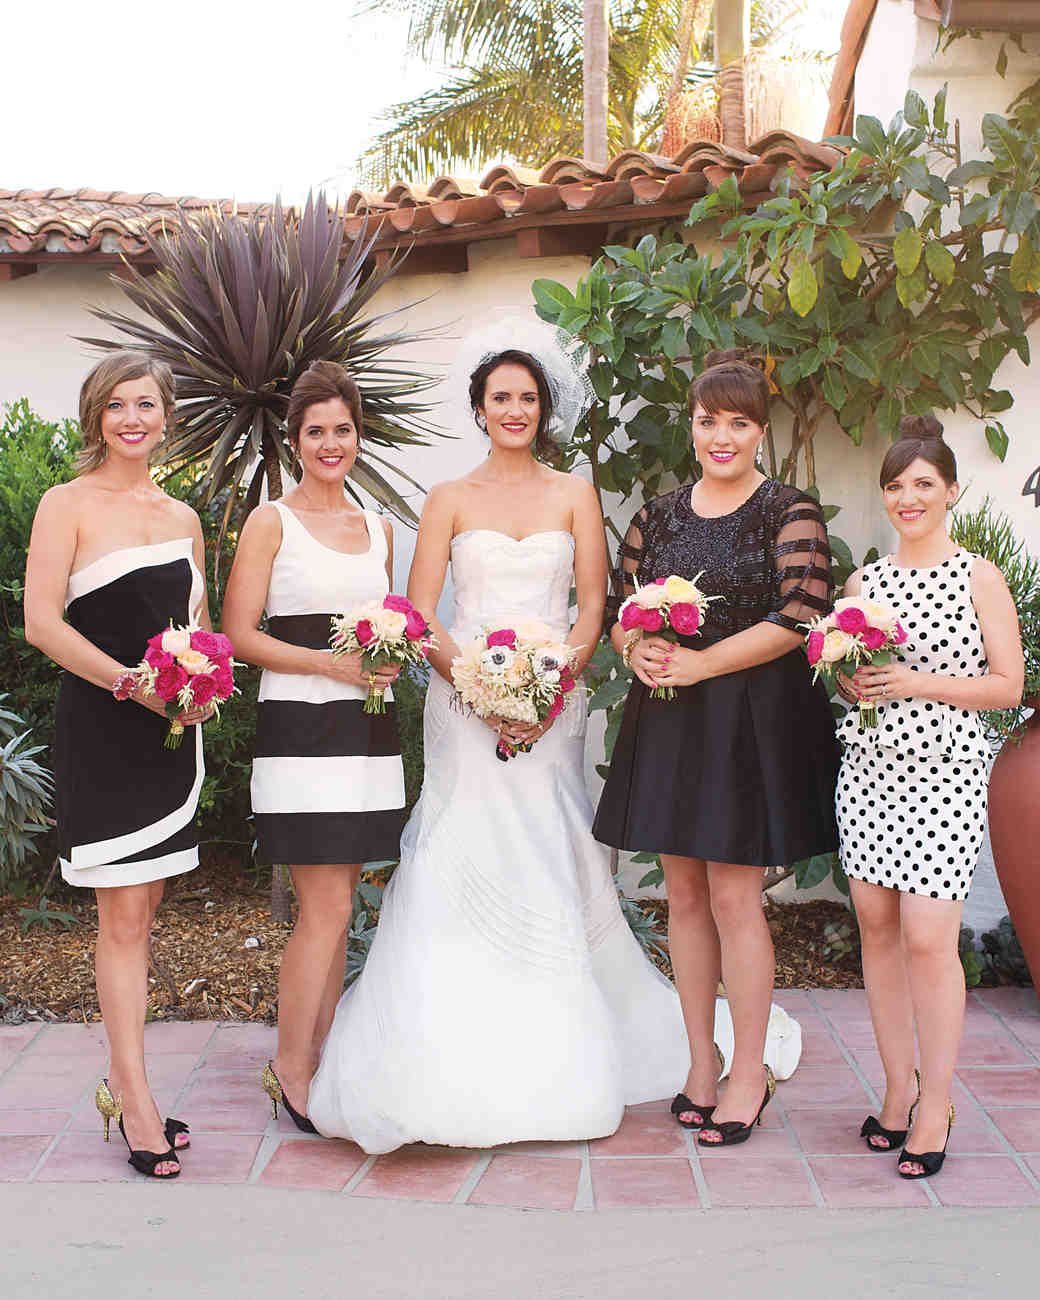 bridesmaids-001-mwd109359.jpg